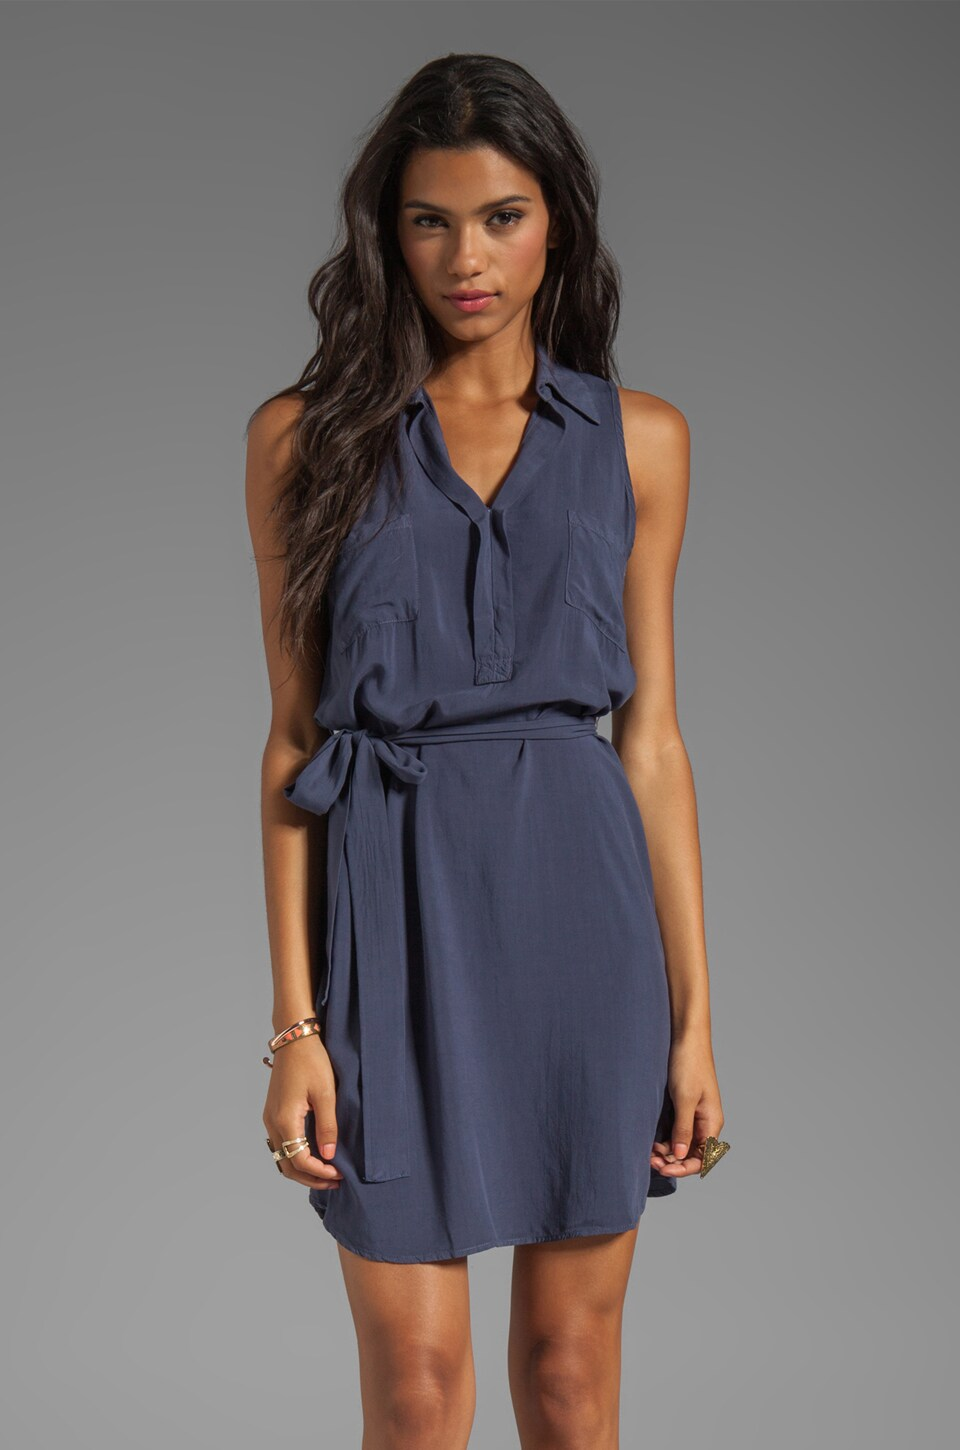 Splendid Collared Tank Dress in Cadet Blue